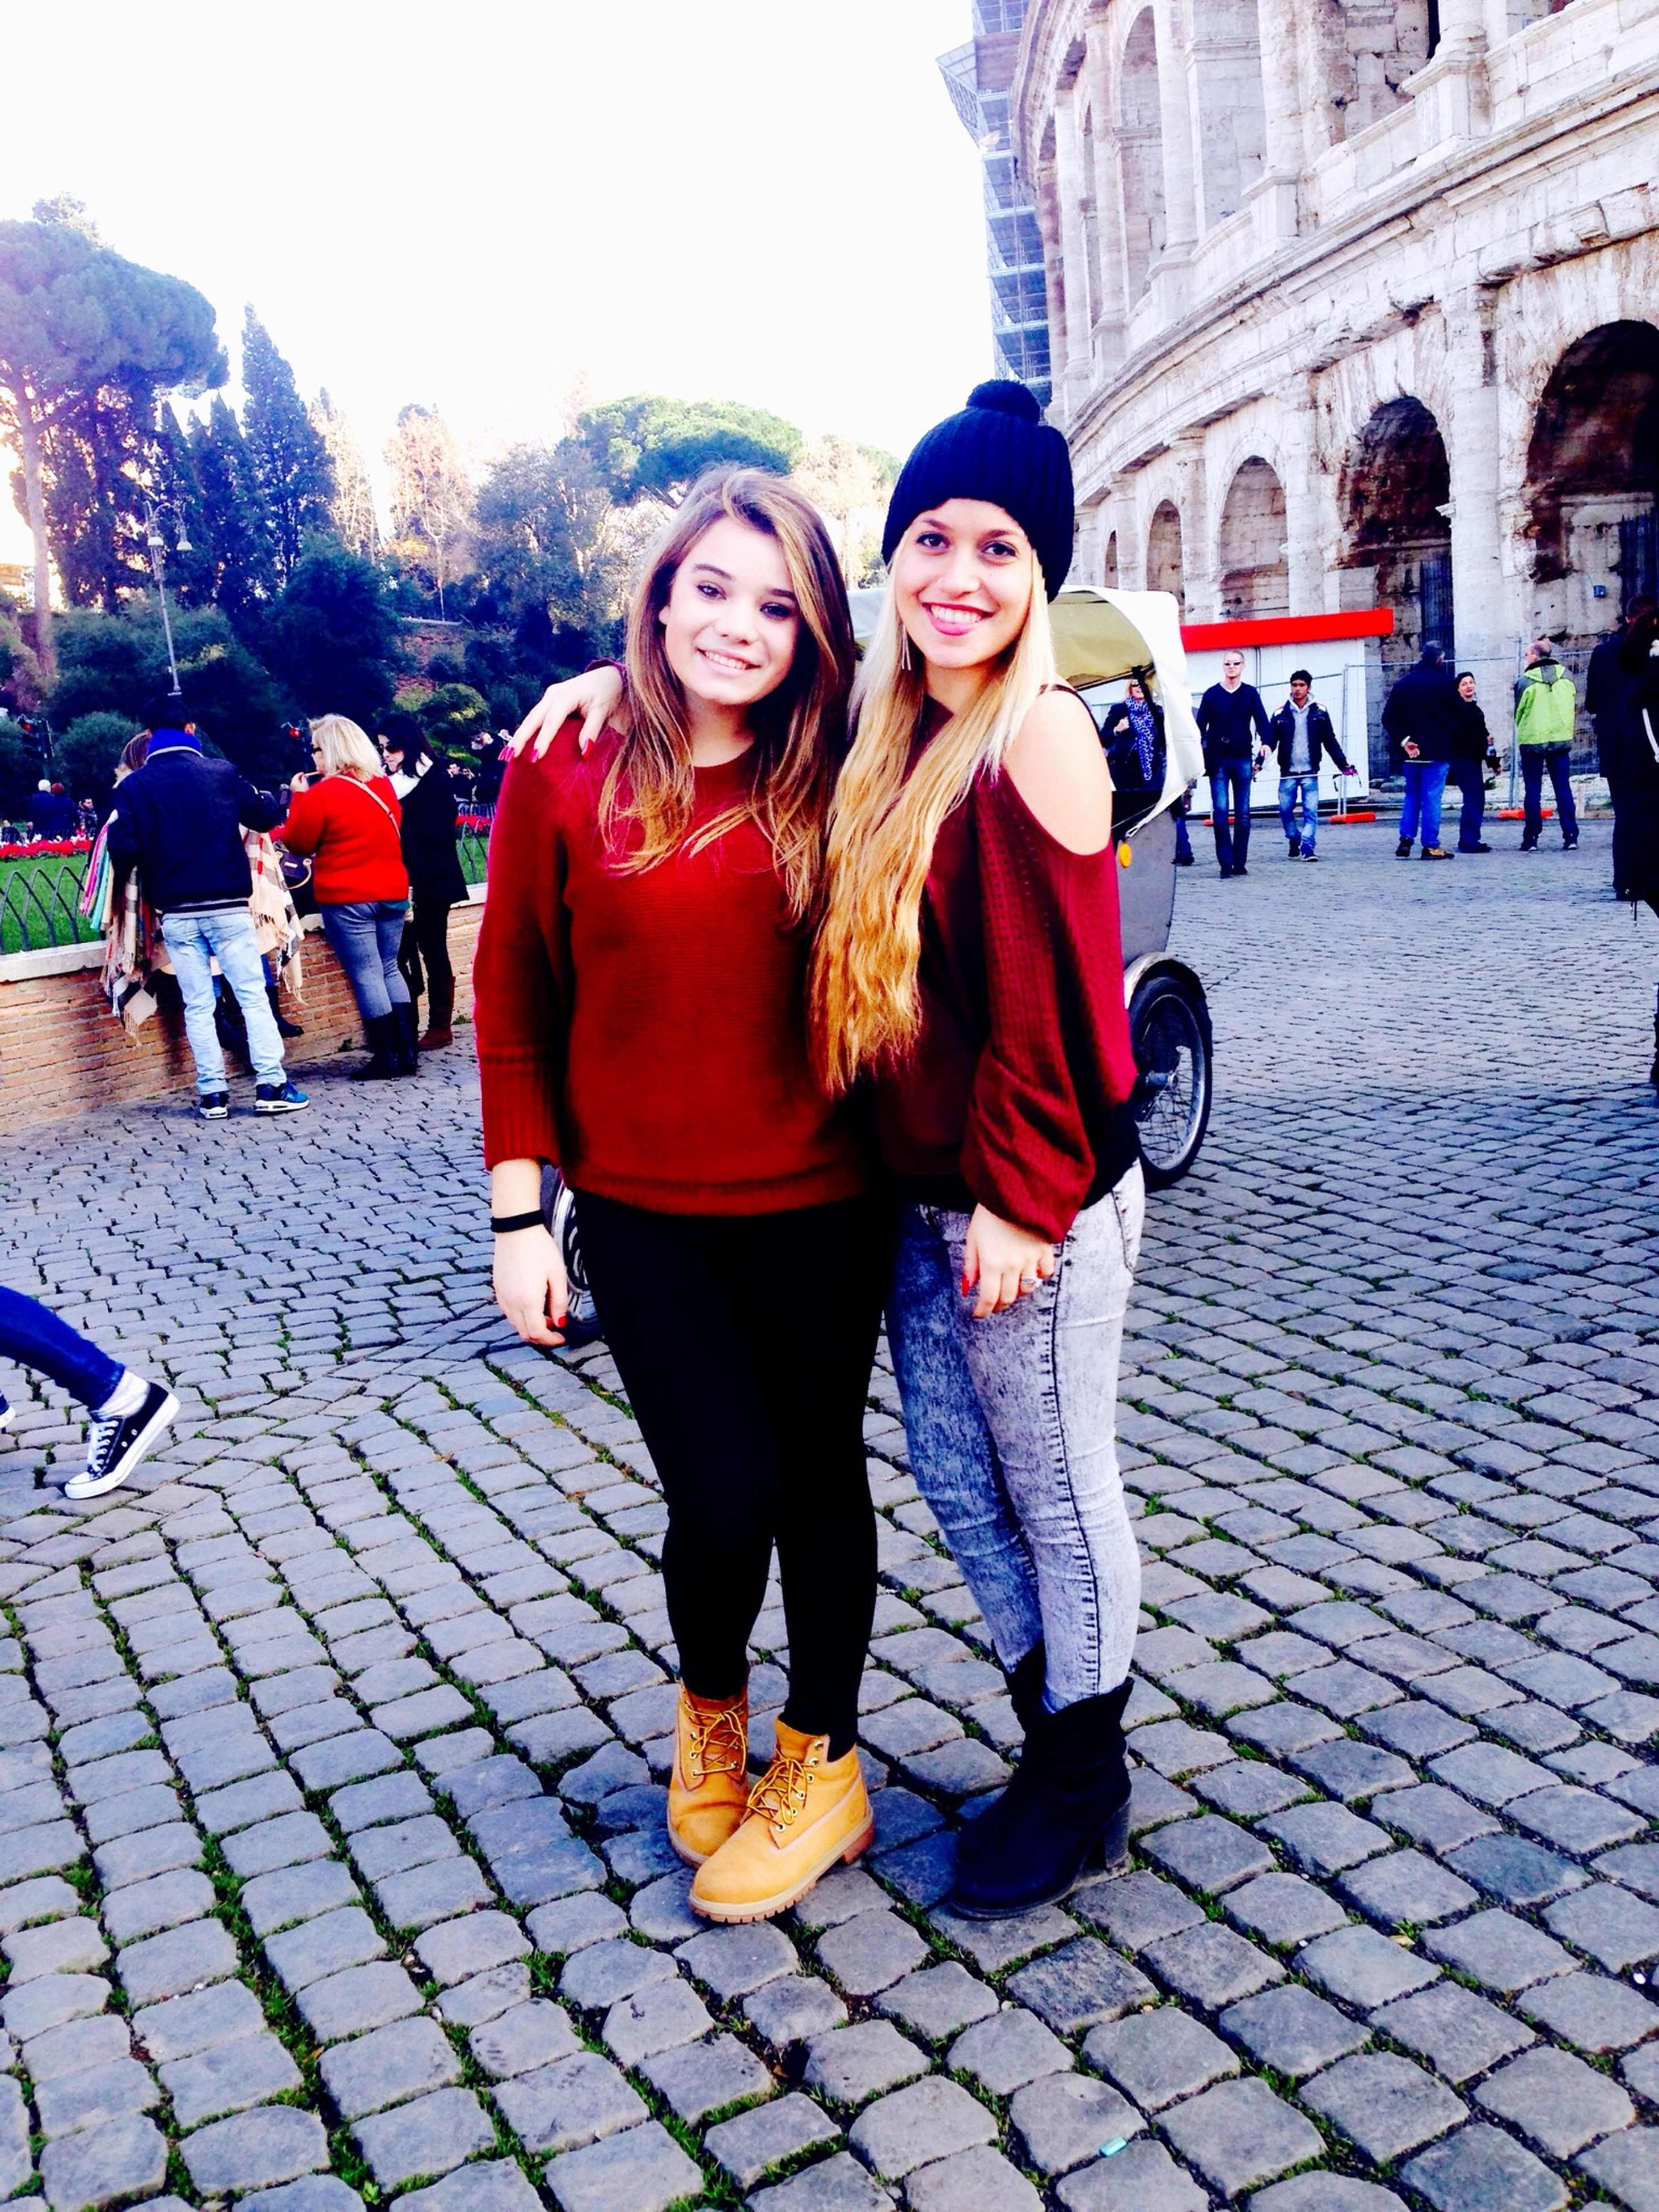 lifestyles, casual clothing, leisure activity, person, looking at camera, portrait, full length, togetherness, front view, smiling, young adult, bonding, happiness, standing, building exterior, young women, cobblestone, built structure